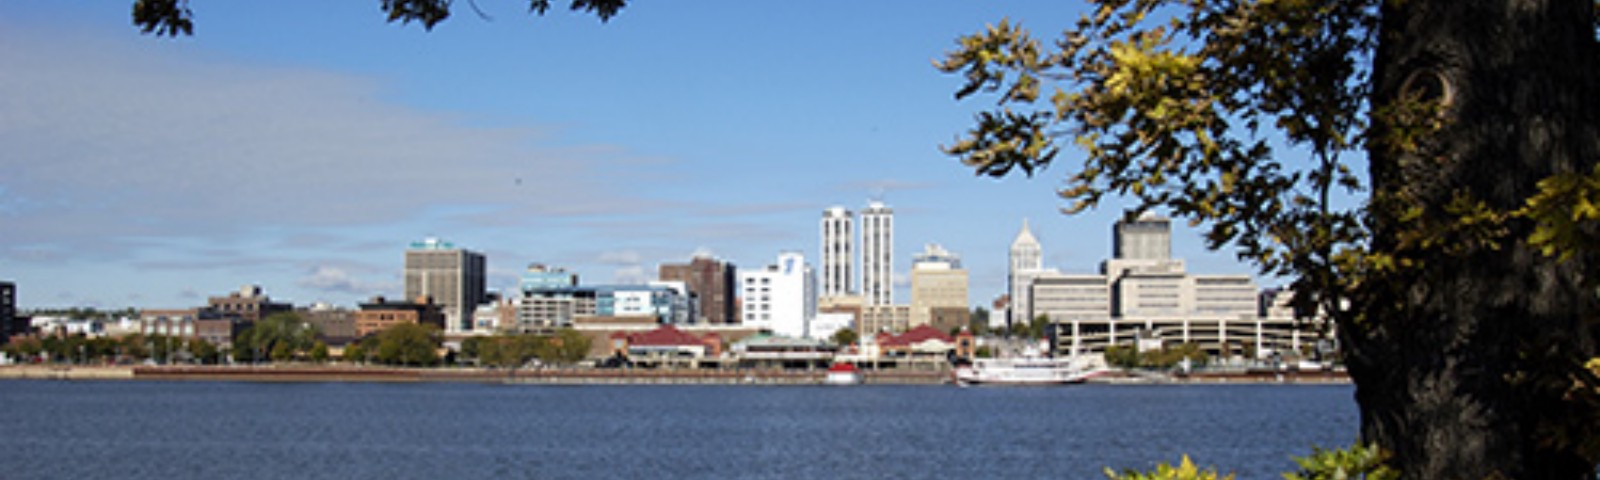 City of Peoria Illinois downtown skyline and trees on the The Illinois River